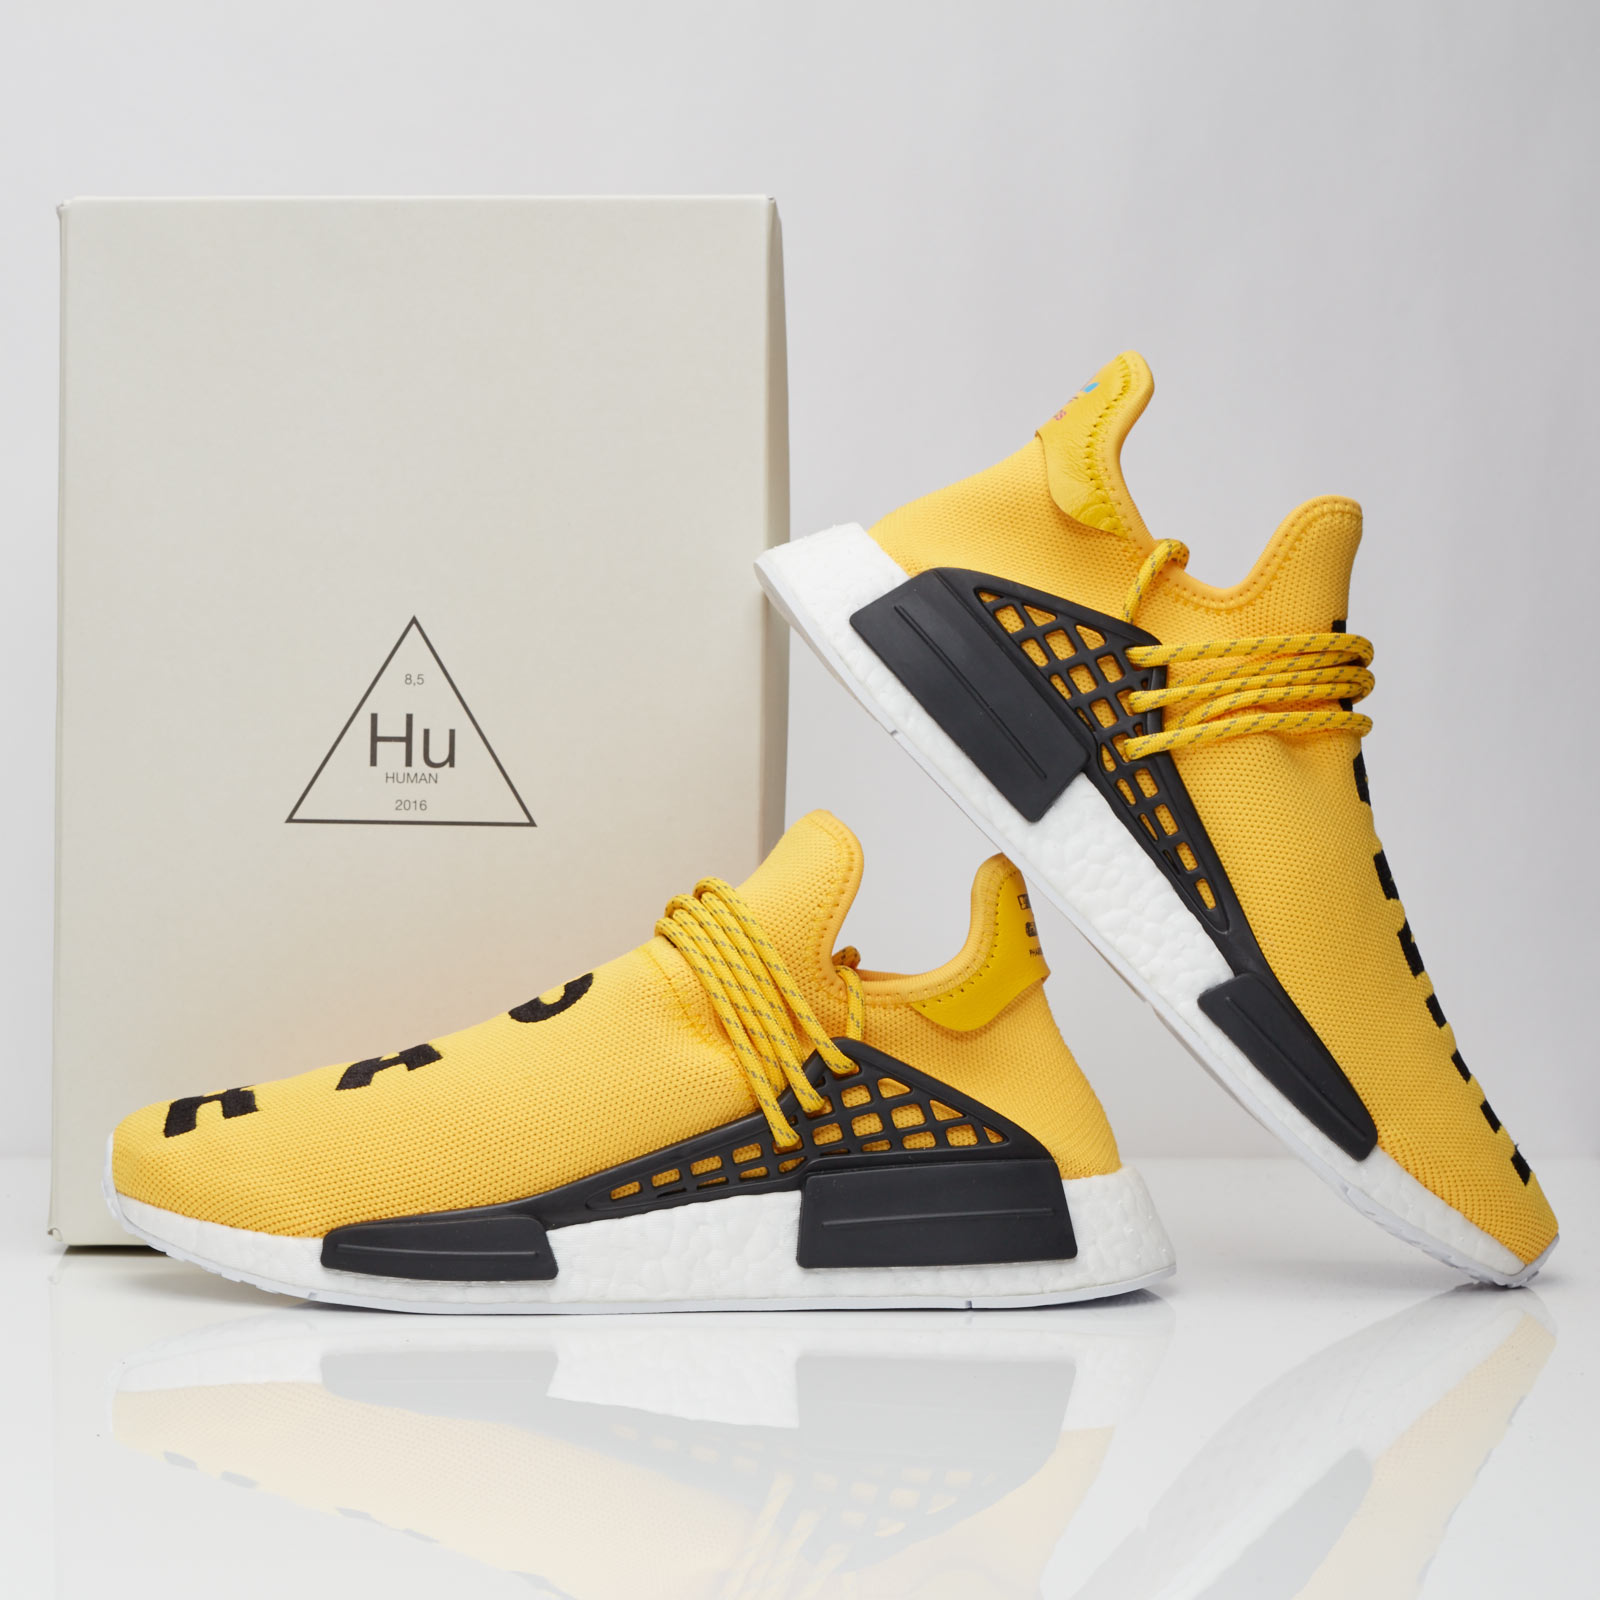 online store 14a19 5430b pw human race nmd adidas